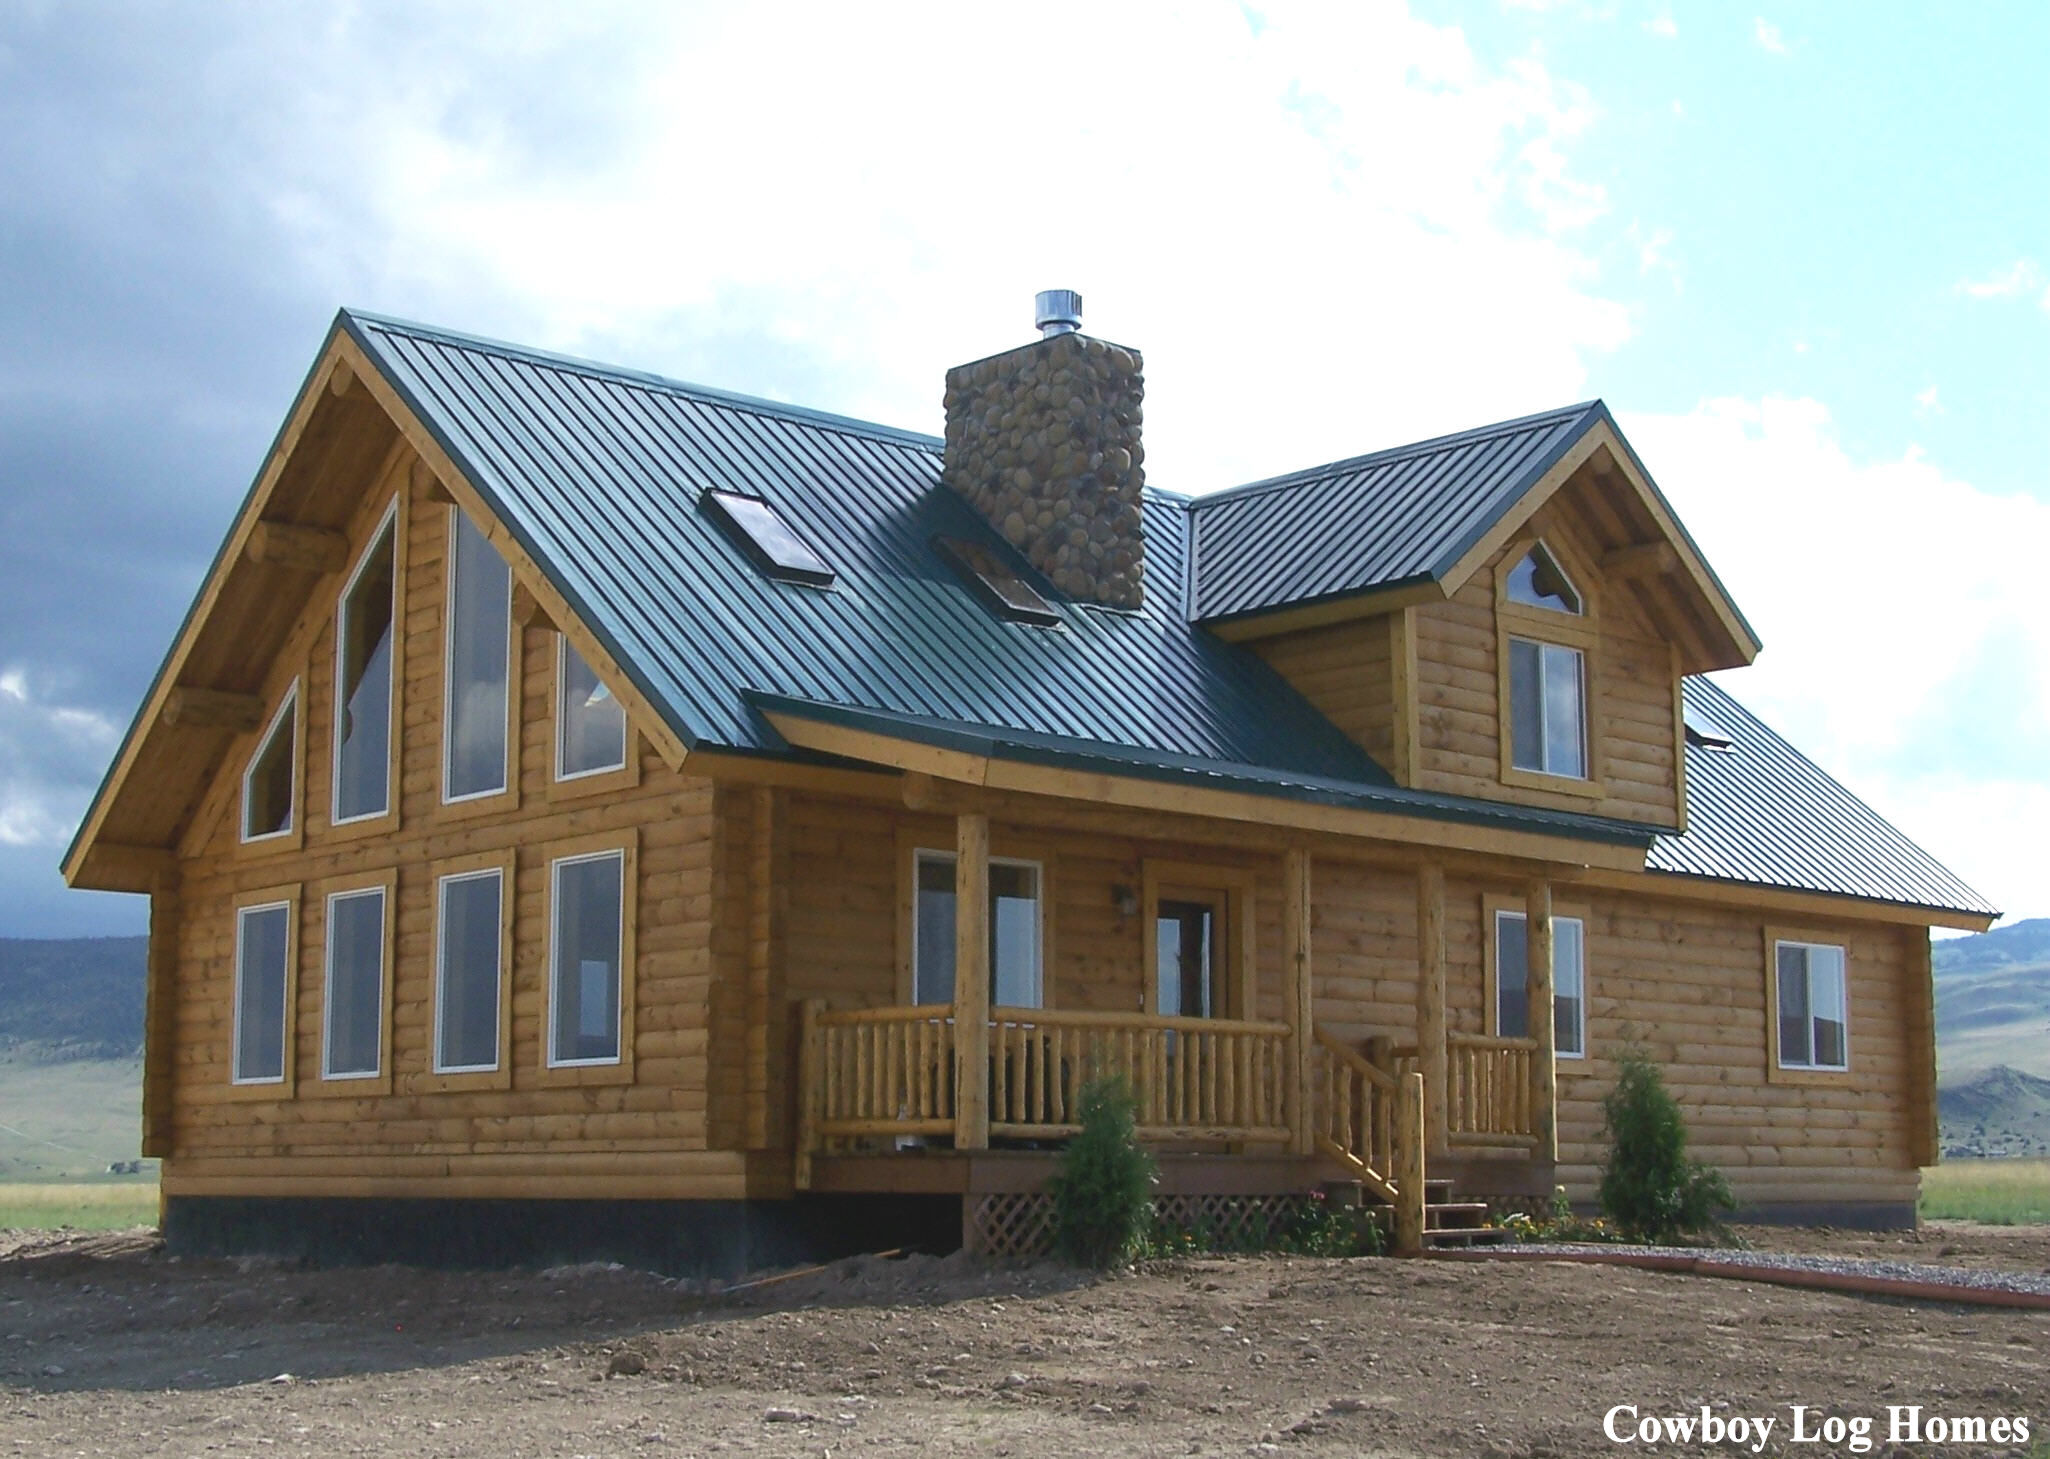 Milled Log Homes Vs Handcrafted Log Homes What S The